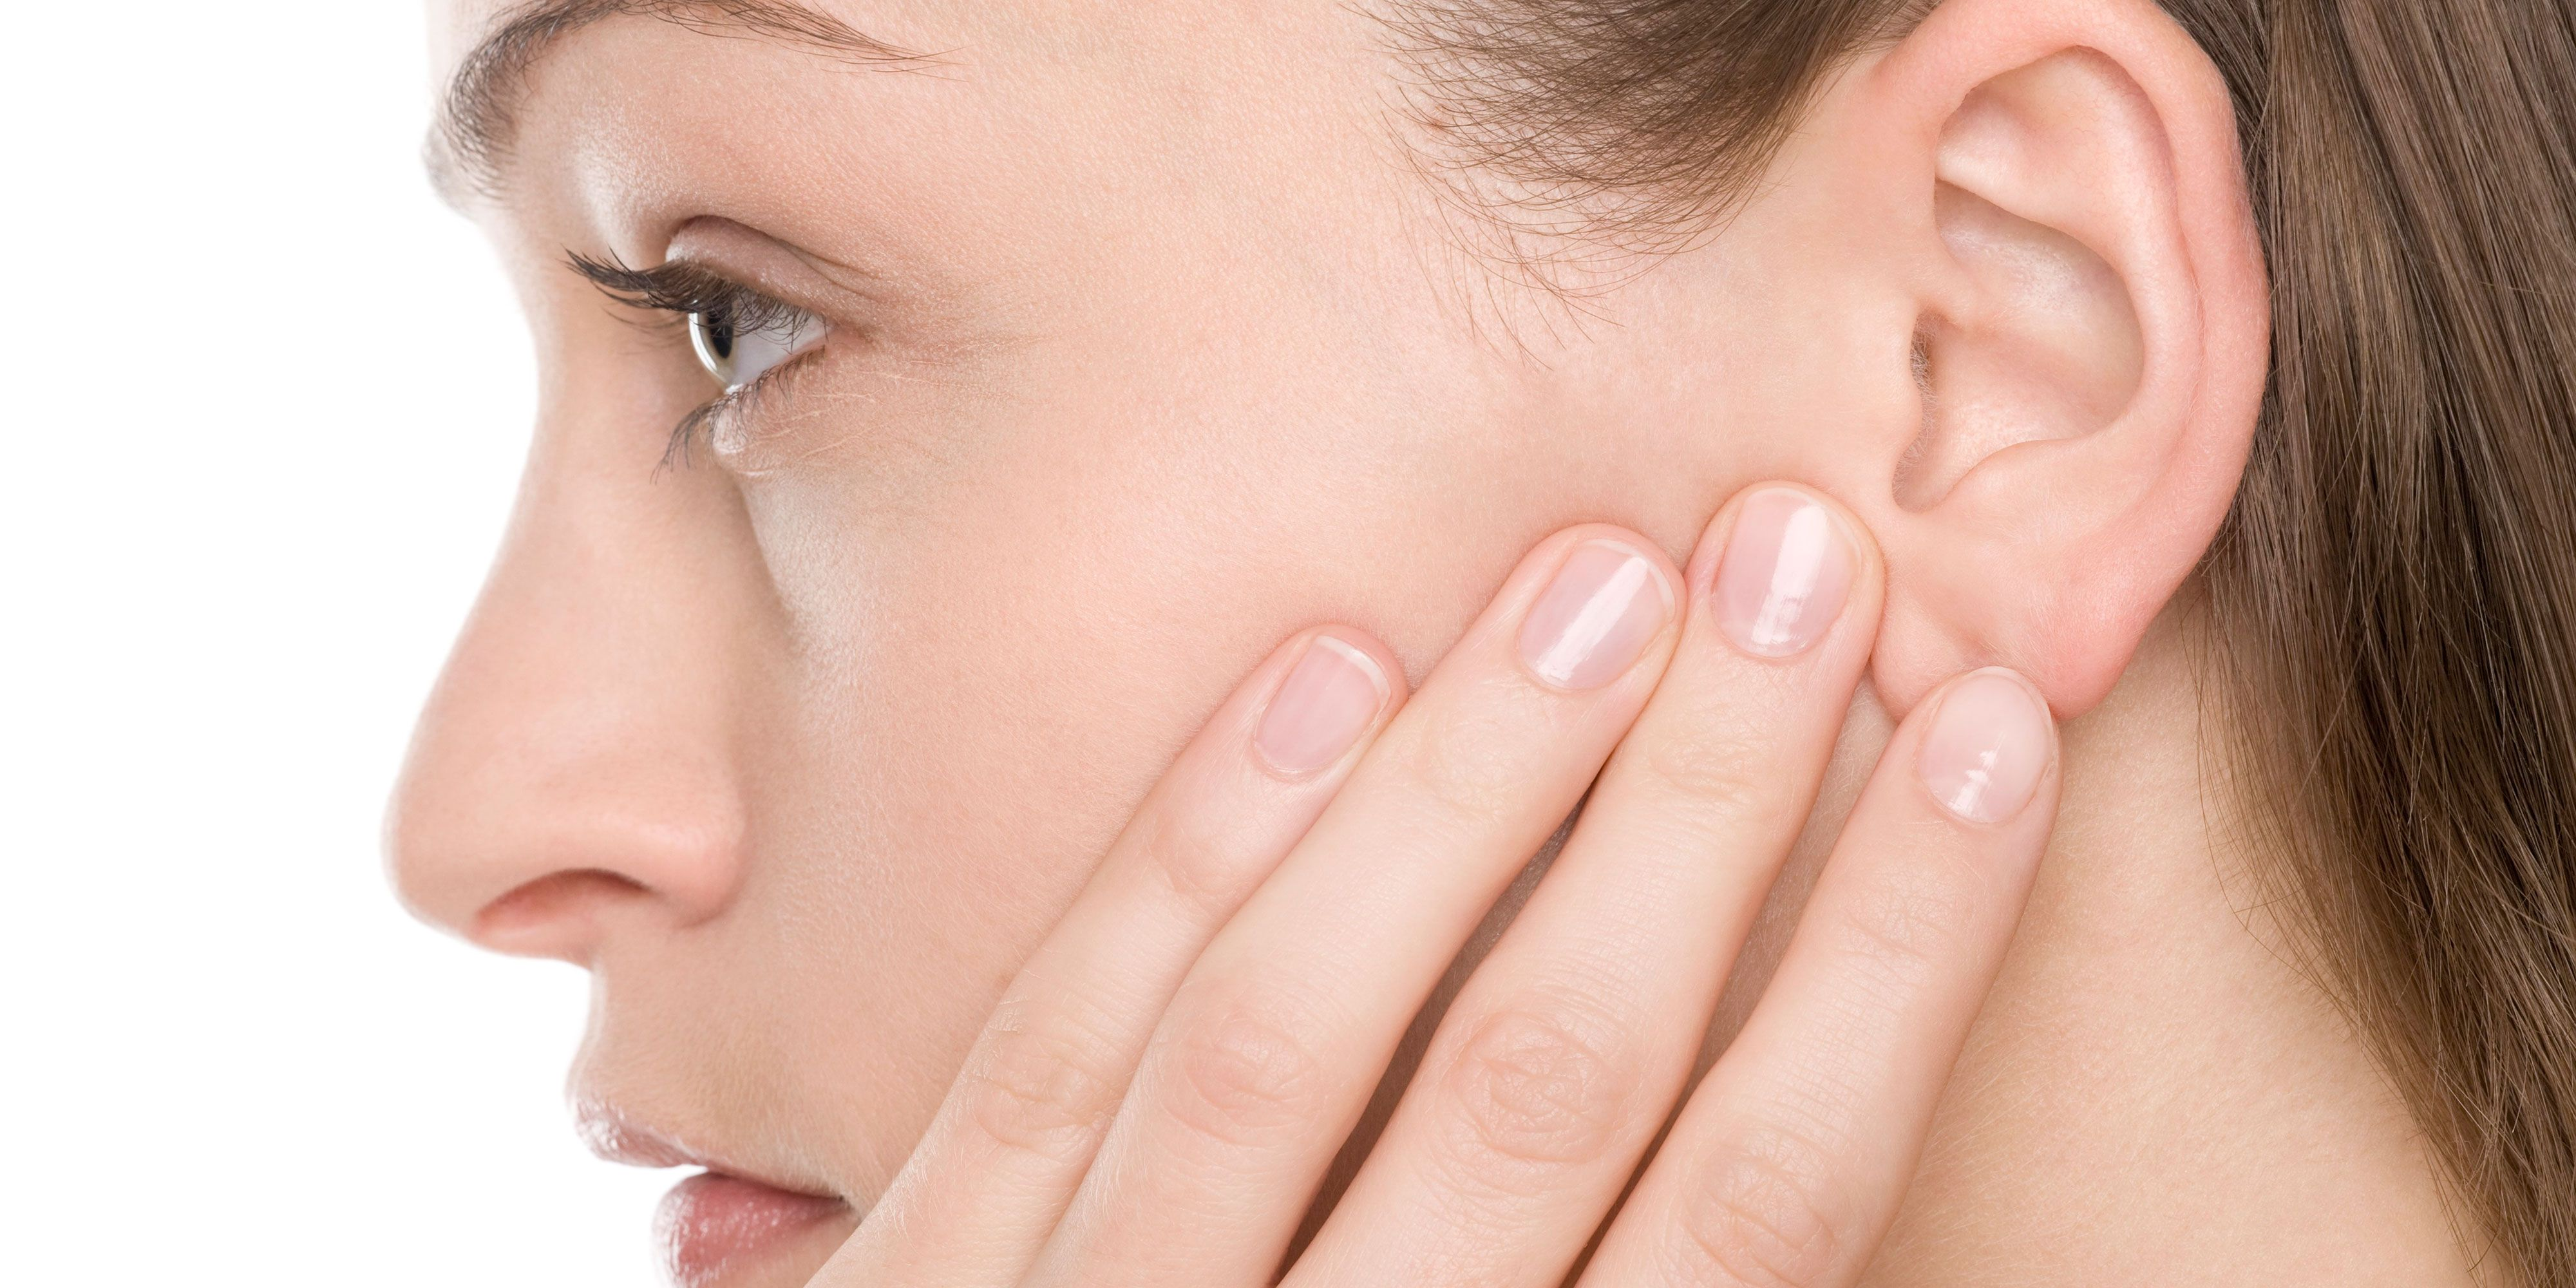 If the throat hurts the ear, how to treat such pains